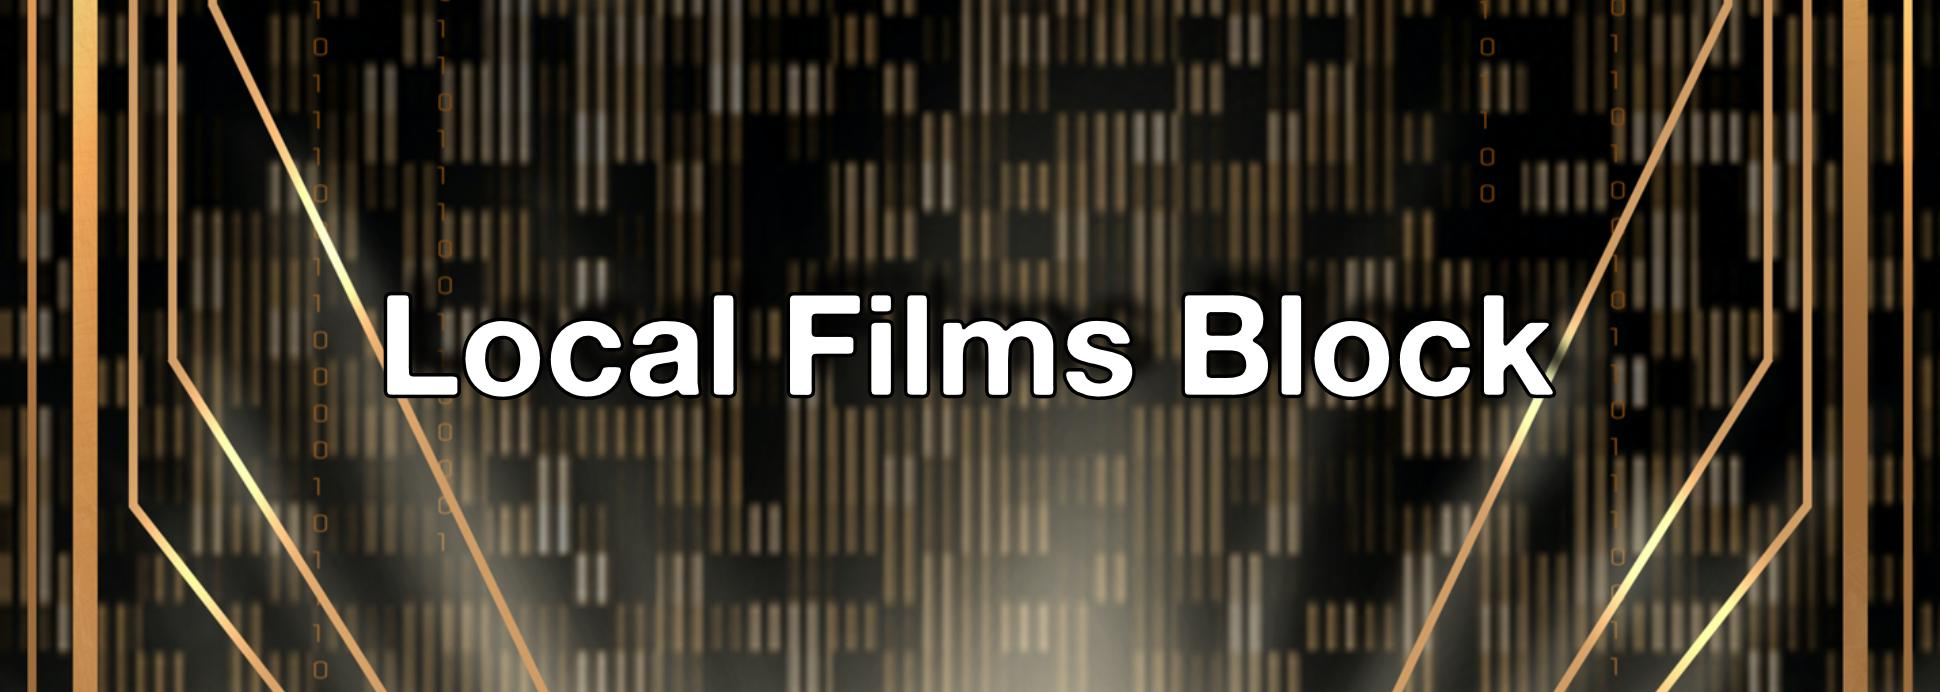 Local Films Block